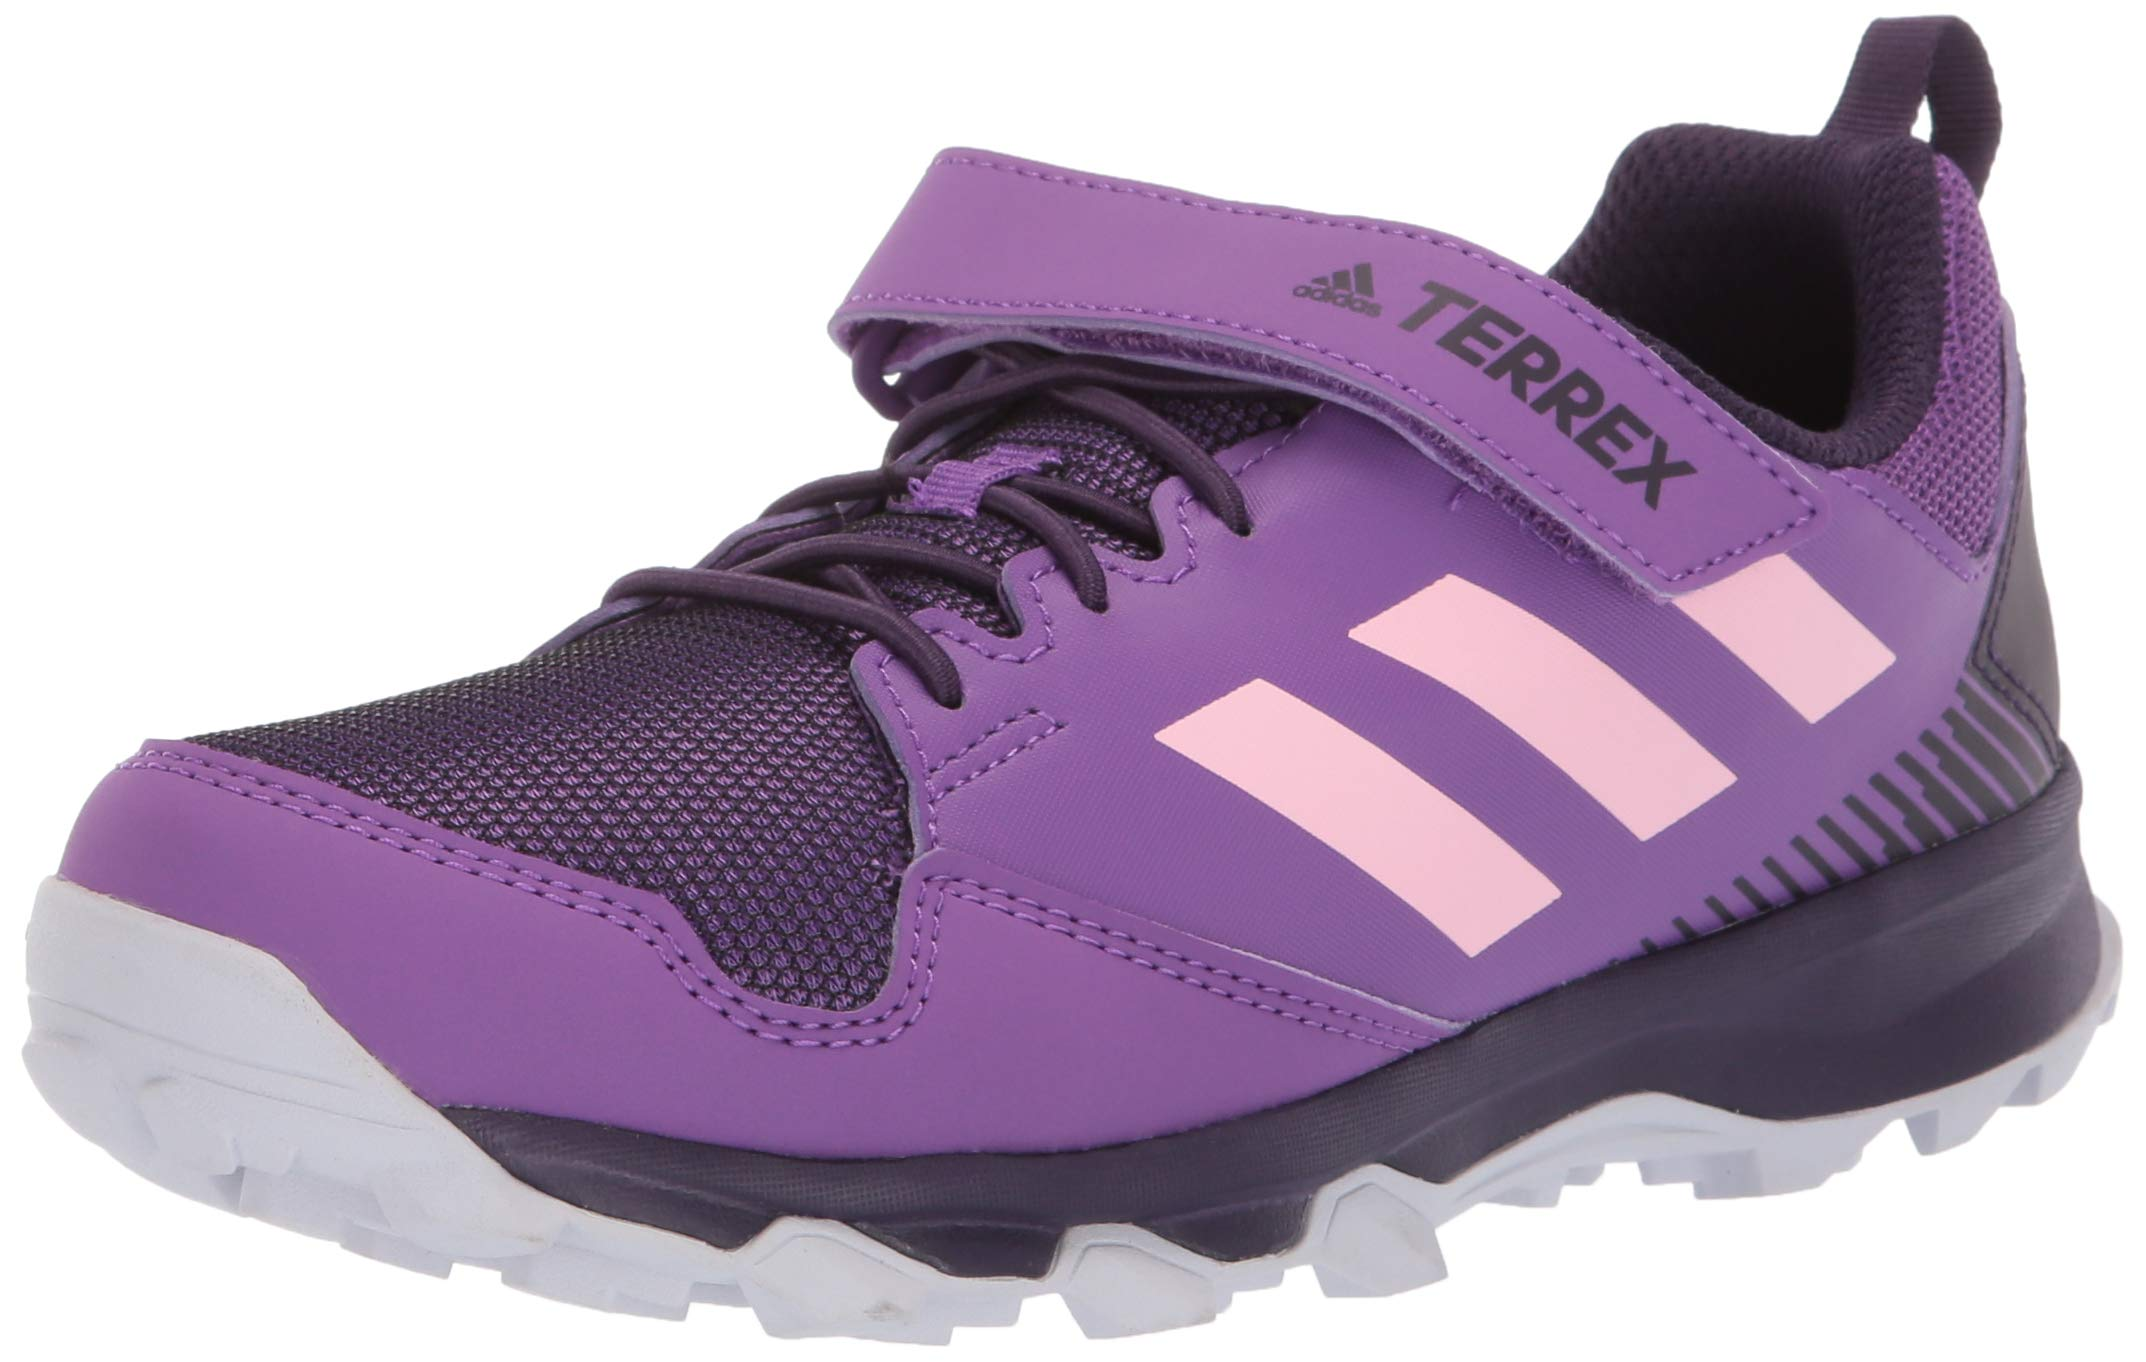 adidas outdoor Terrex Tracerocker CF Kids Trail Running Shoe, Active True Pink/Legend Purple, 2 Child US Big